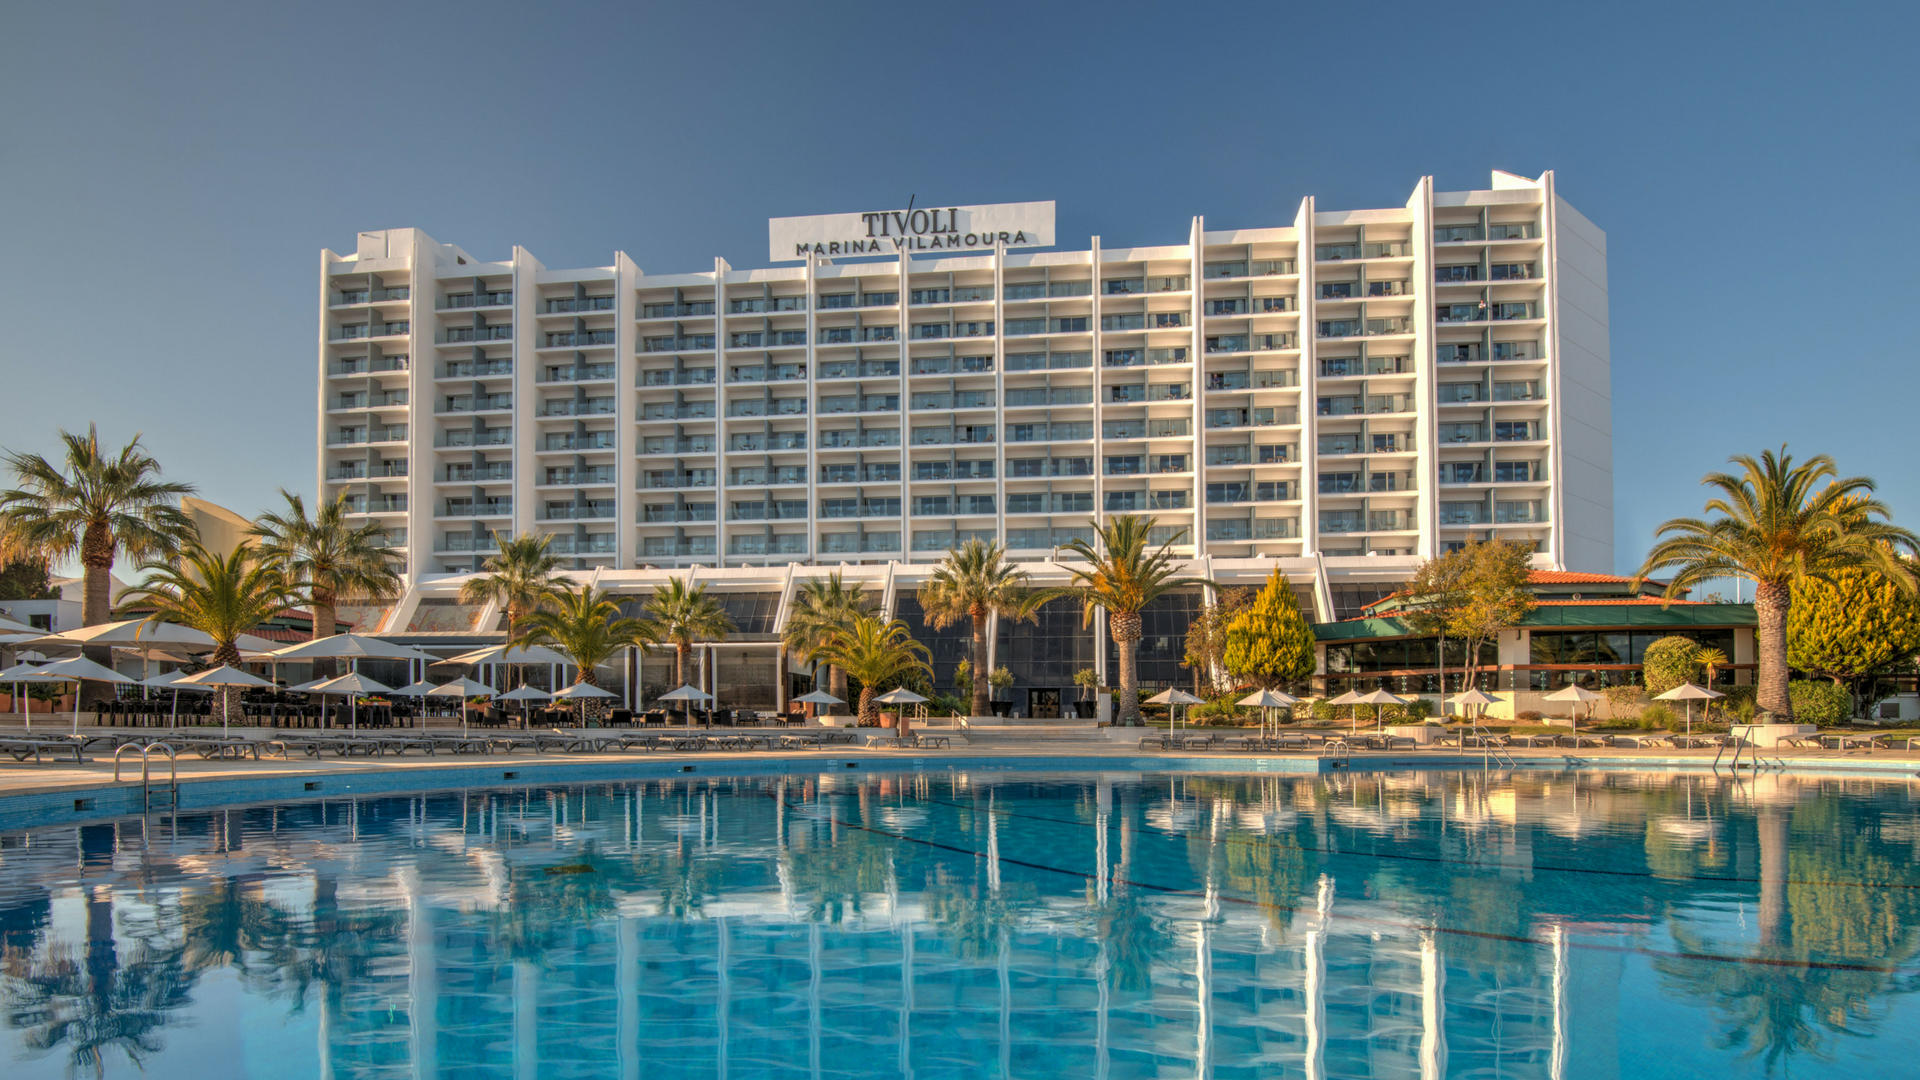 Tivoli Marina Vilamoura Algarve Resort's Pool and Facade